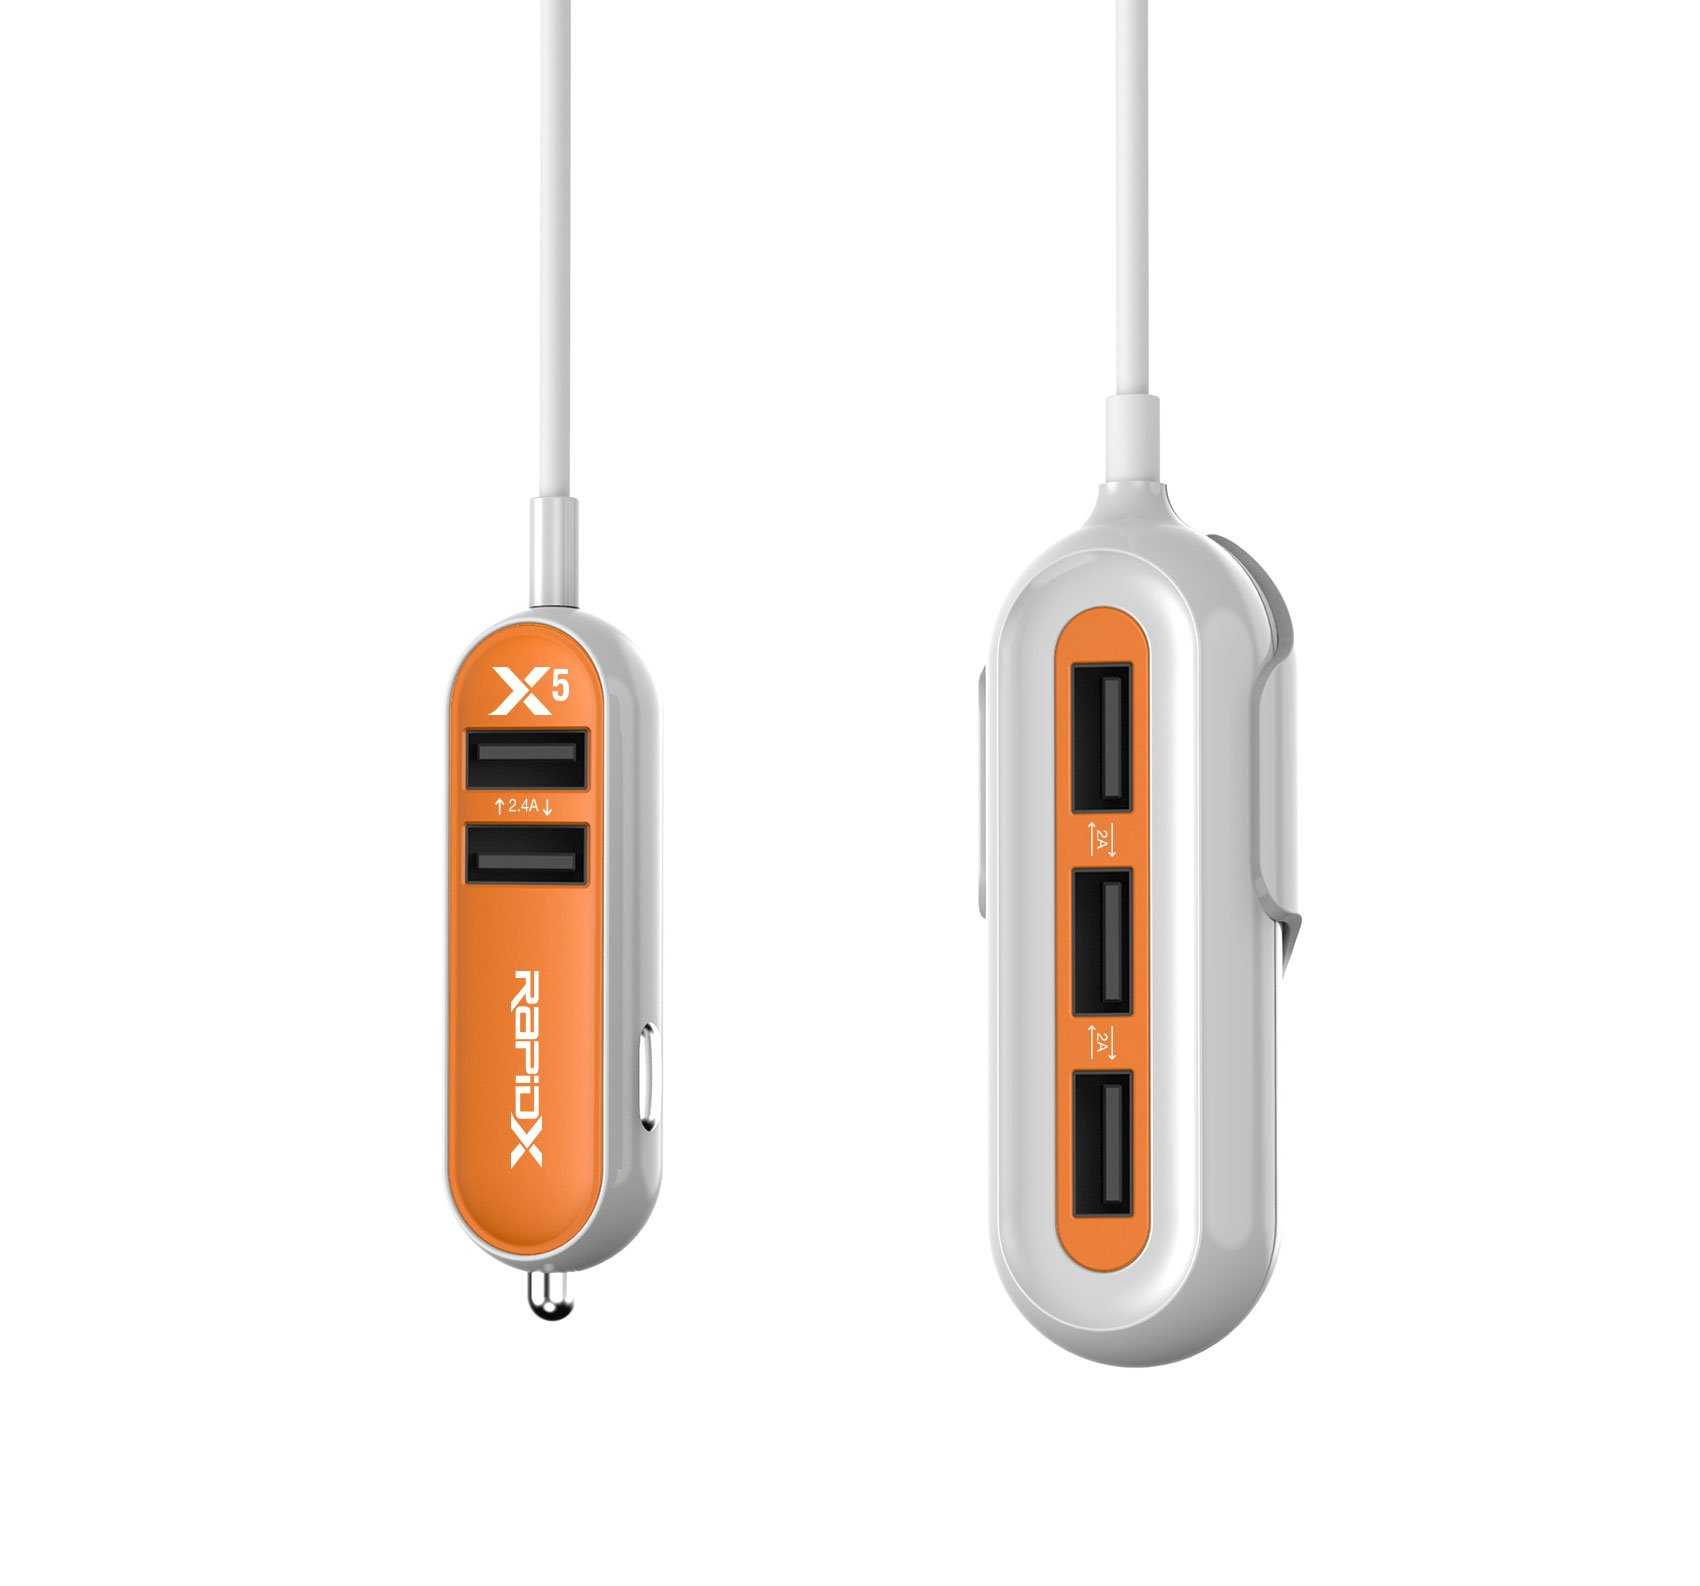 RapidX X5 Car Charger with 5 USB Ports for iPhone and Android Orange